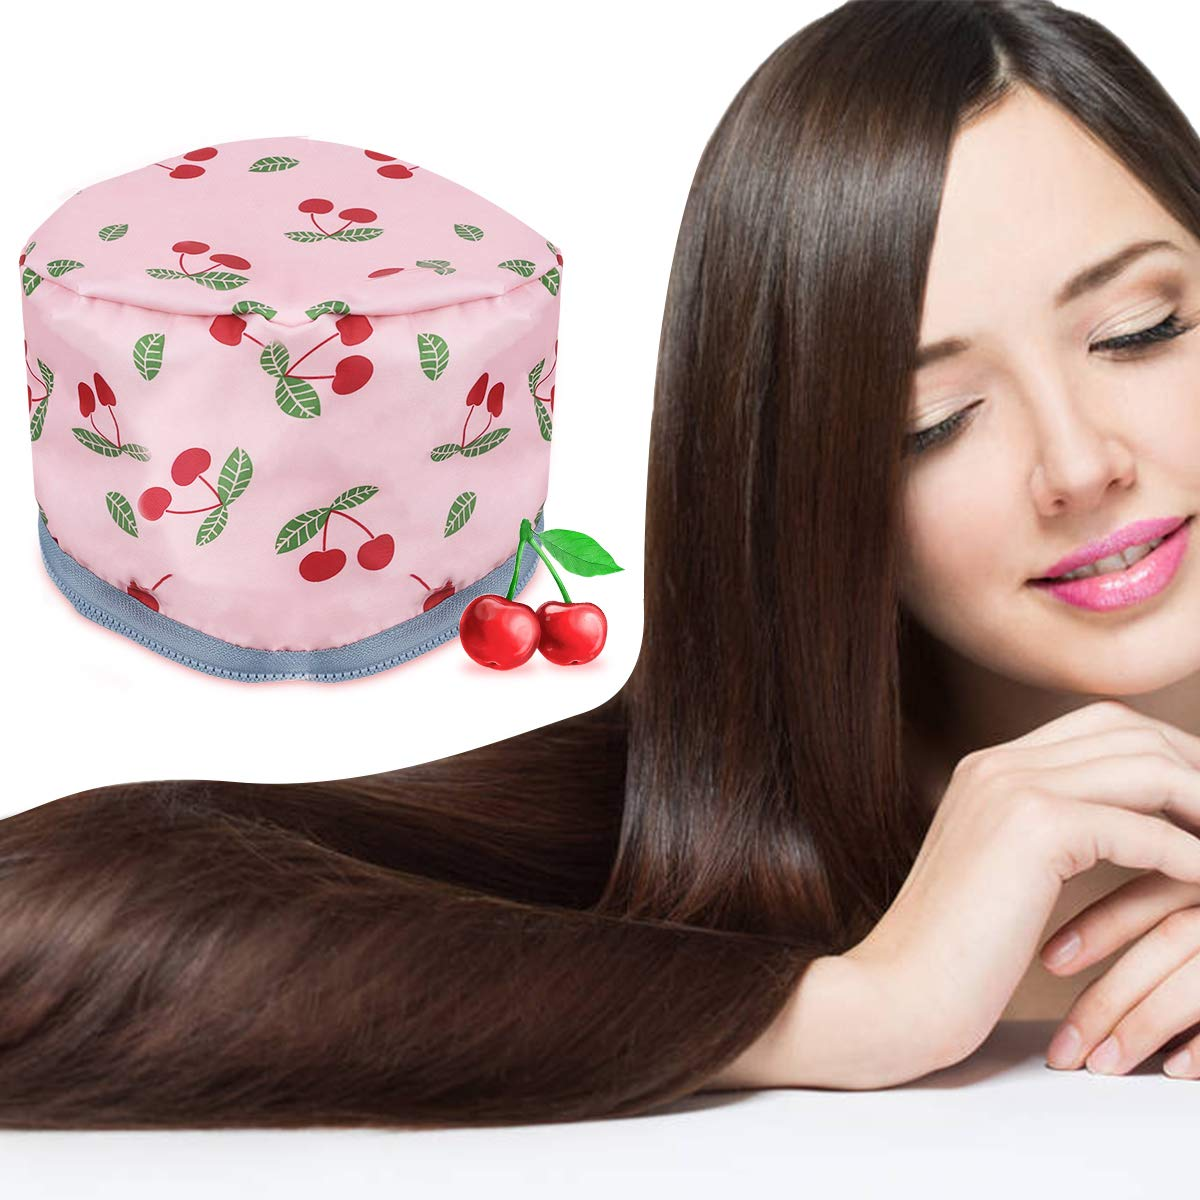 110V Hair Care Hat, GLAMADOR Electric Hair Cap, Thermal Cap For Home Hair Spa Hair Steamer Cap Beauty Nourishing Hair Care Hat with 2 Level Temperature Control